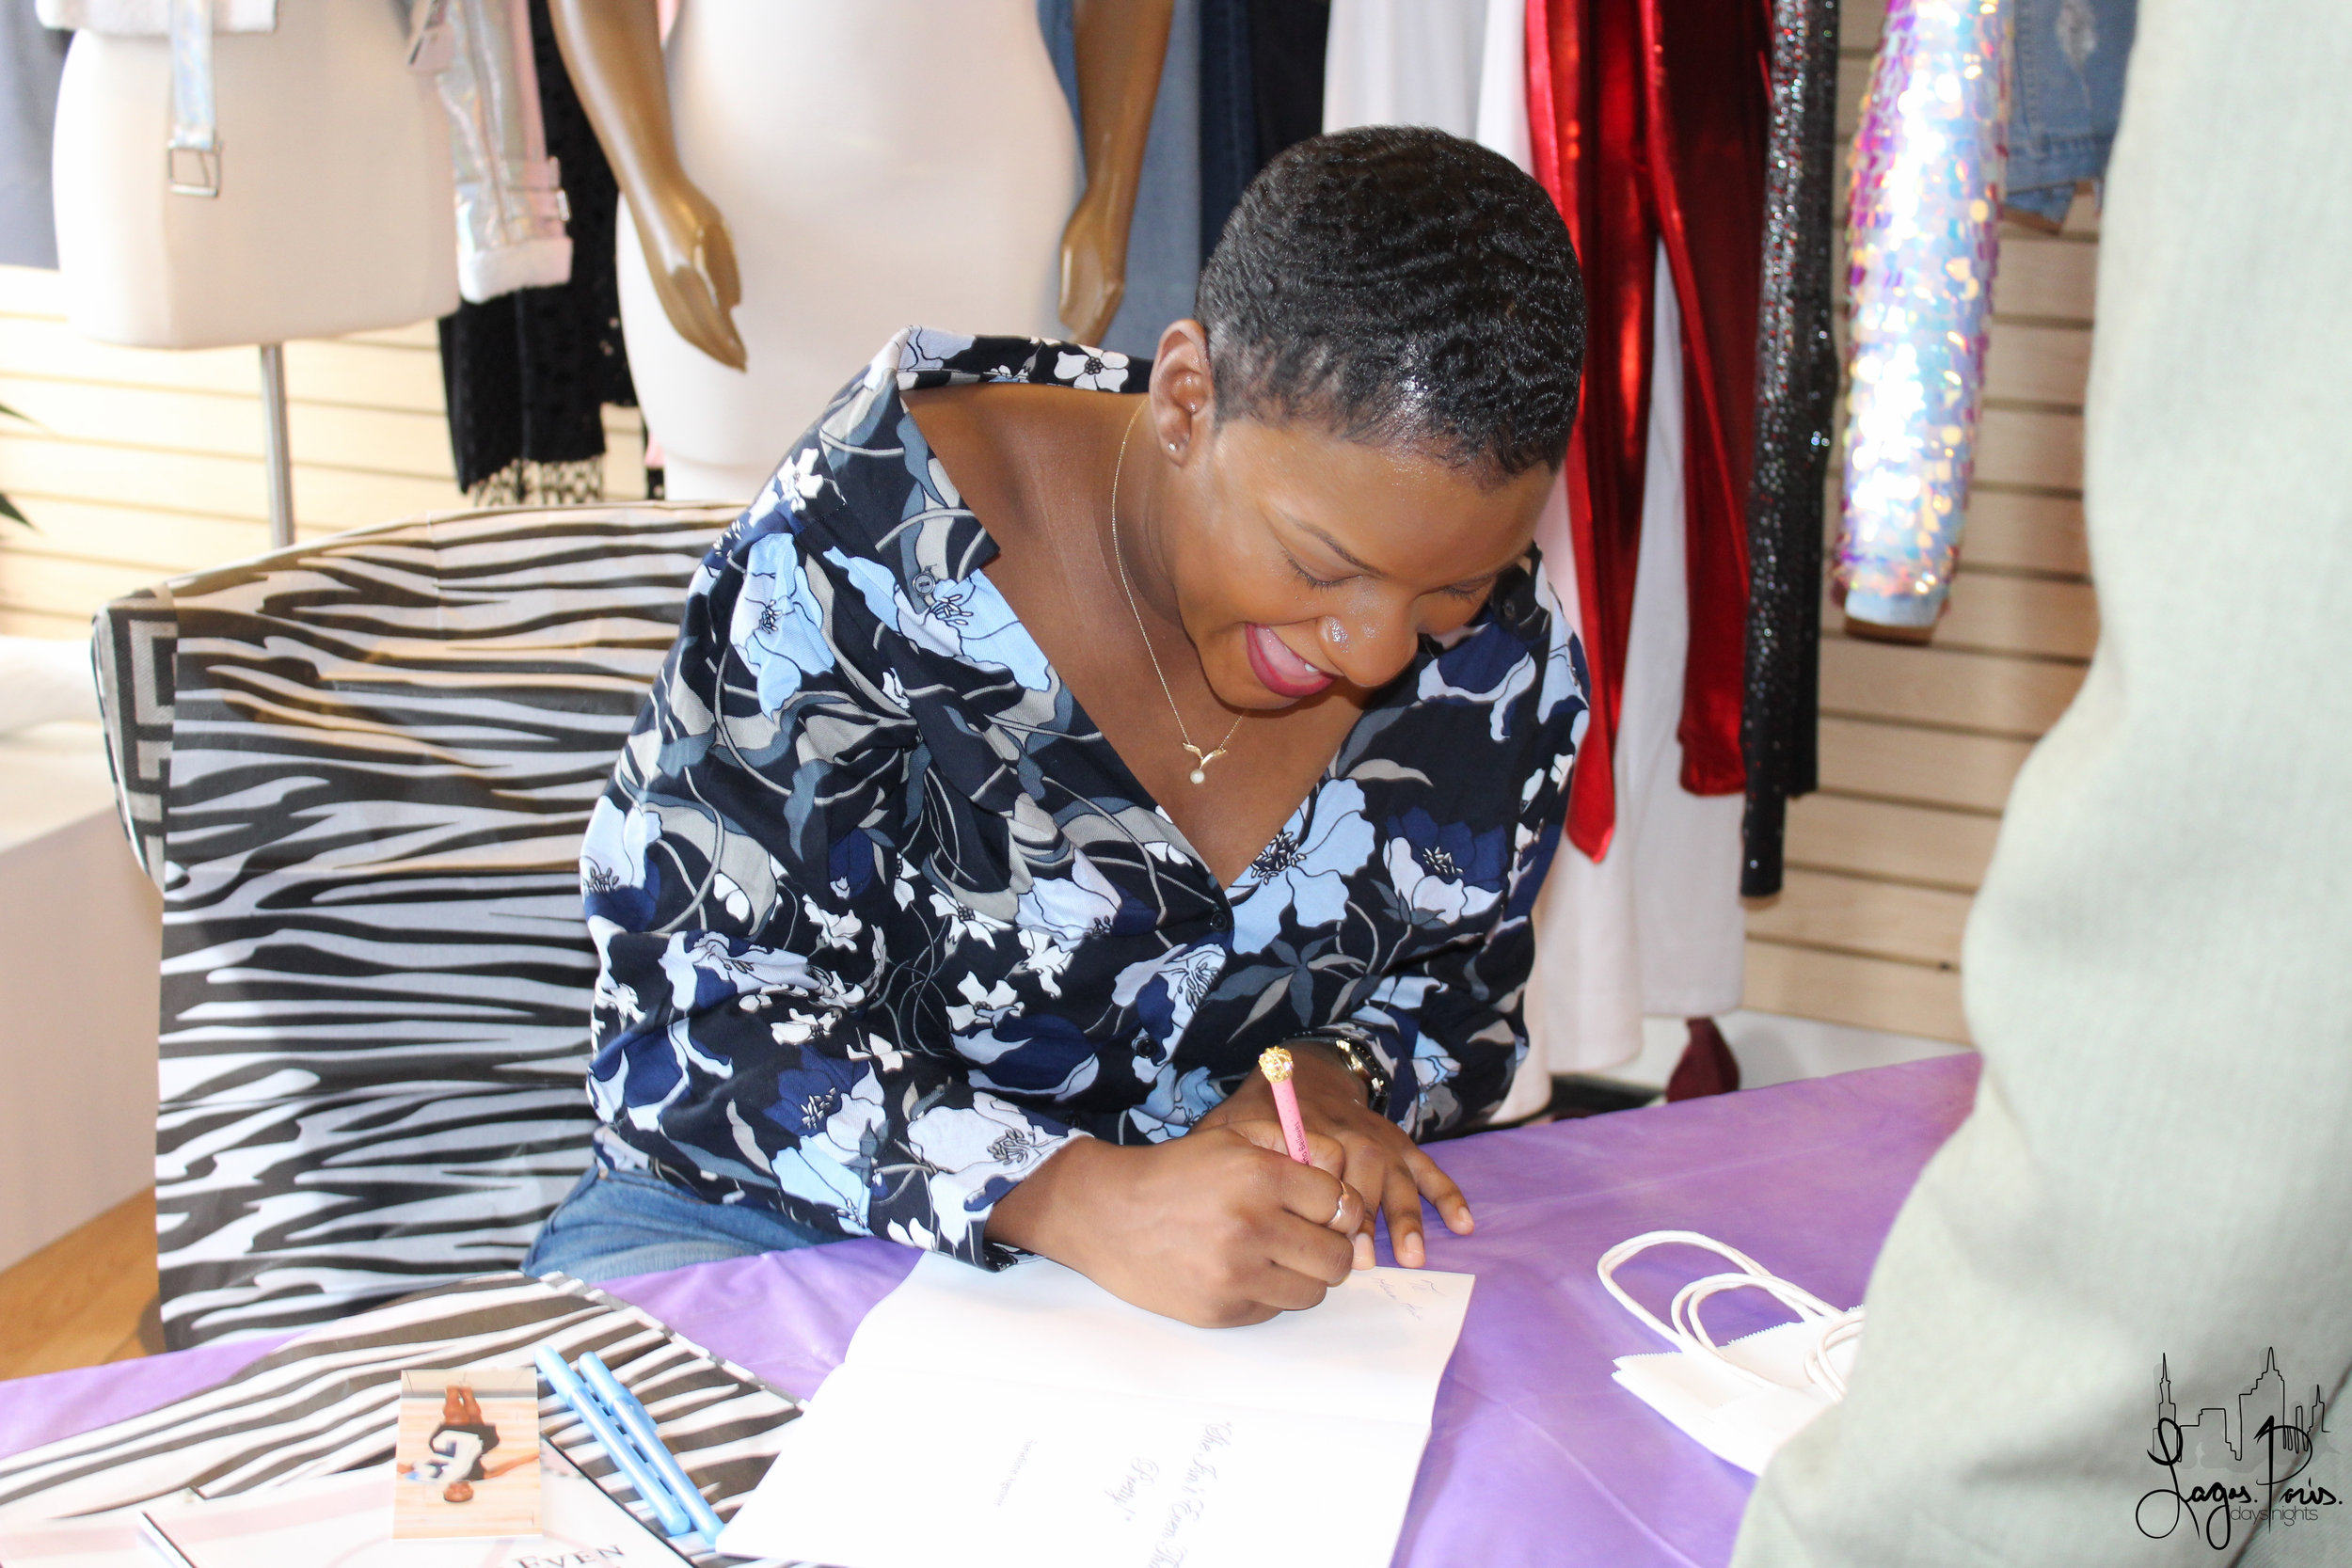 Saradjine happily signs a copy of her book for an event attendee.